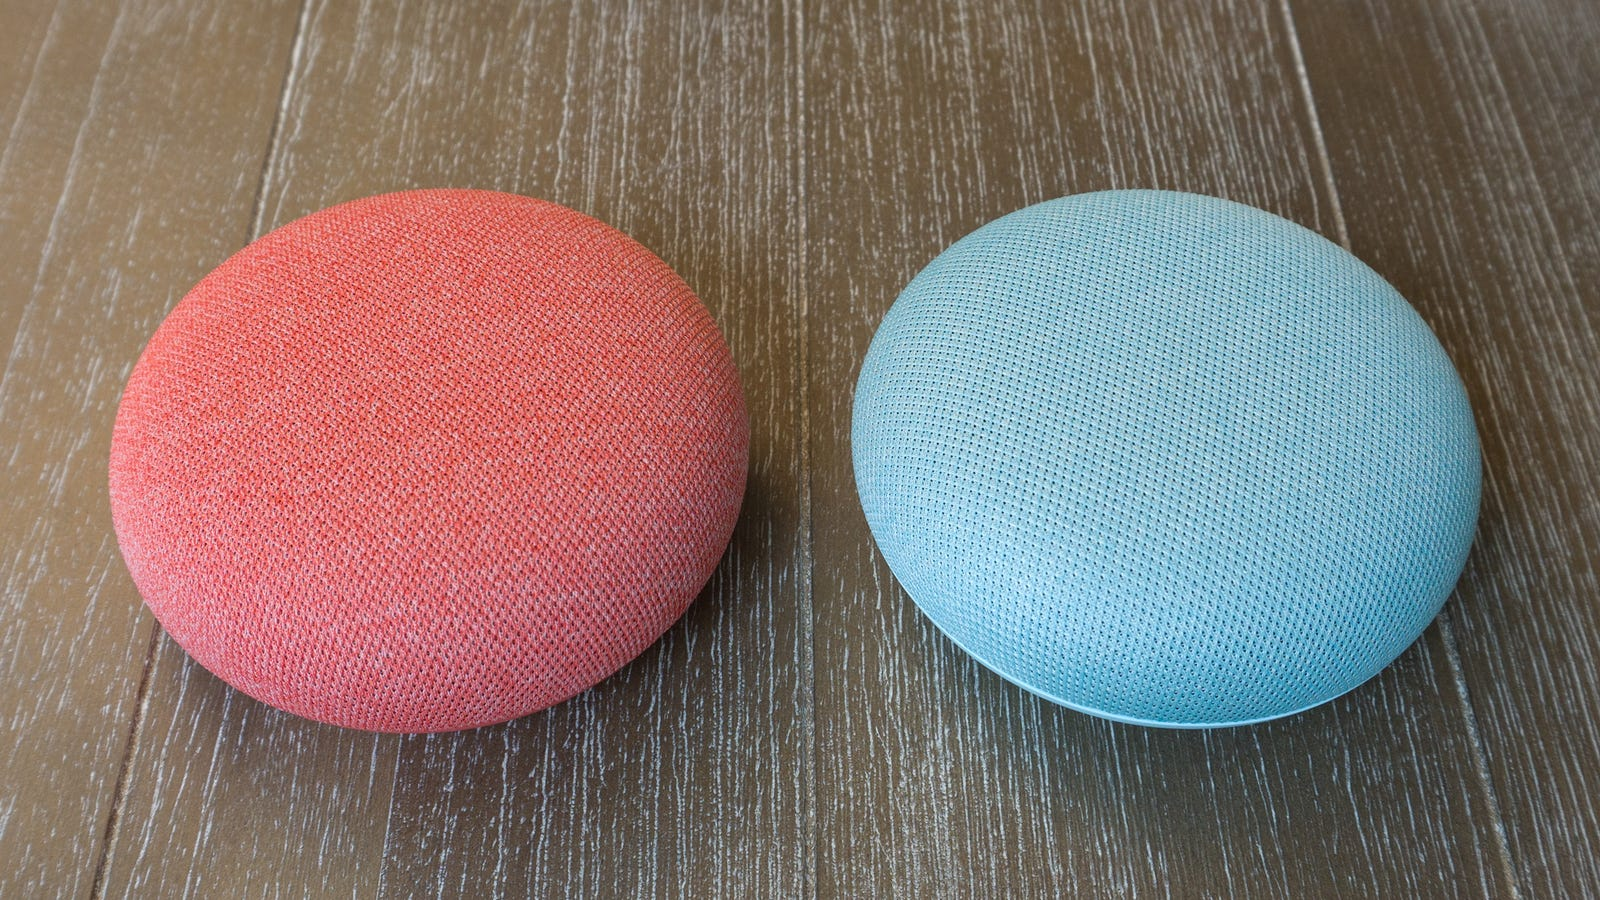 The Google Nest Mini on the left, compared to the Google Home Mini on the right. Can you tell them apart? We can't.